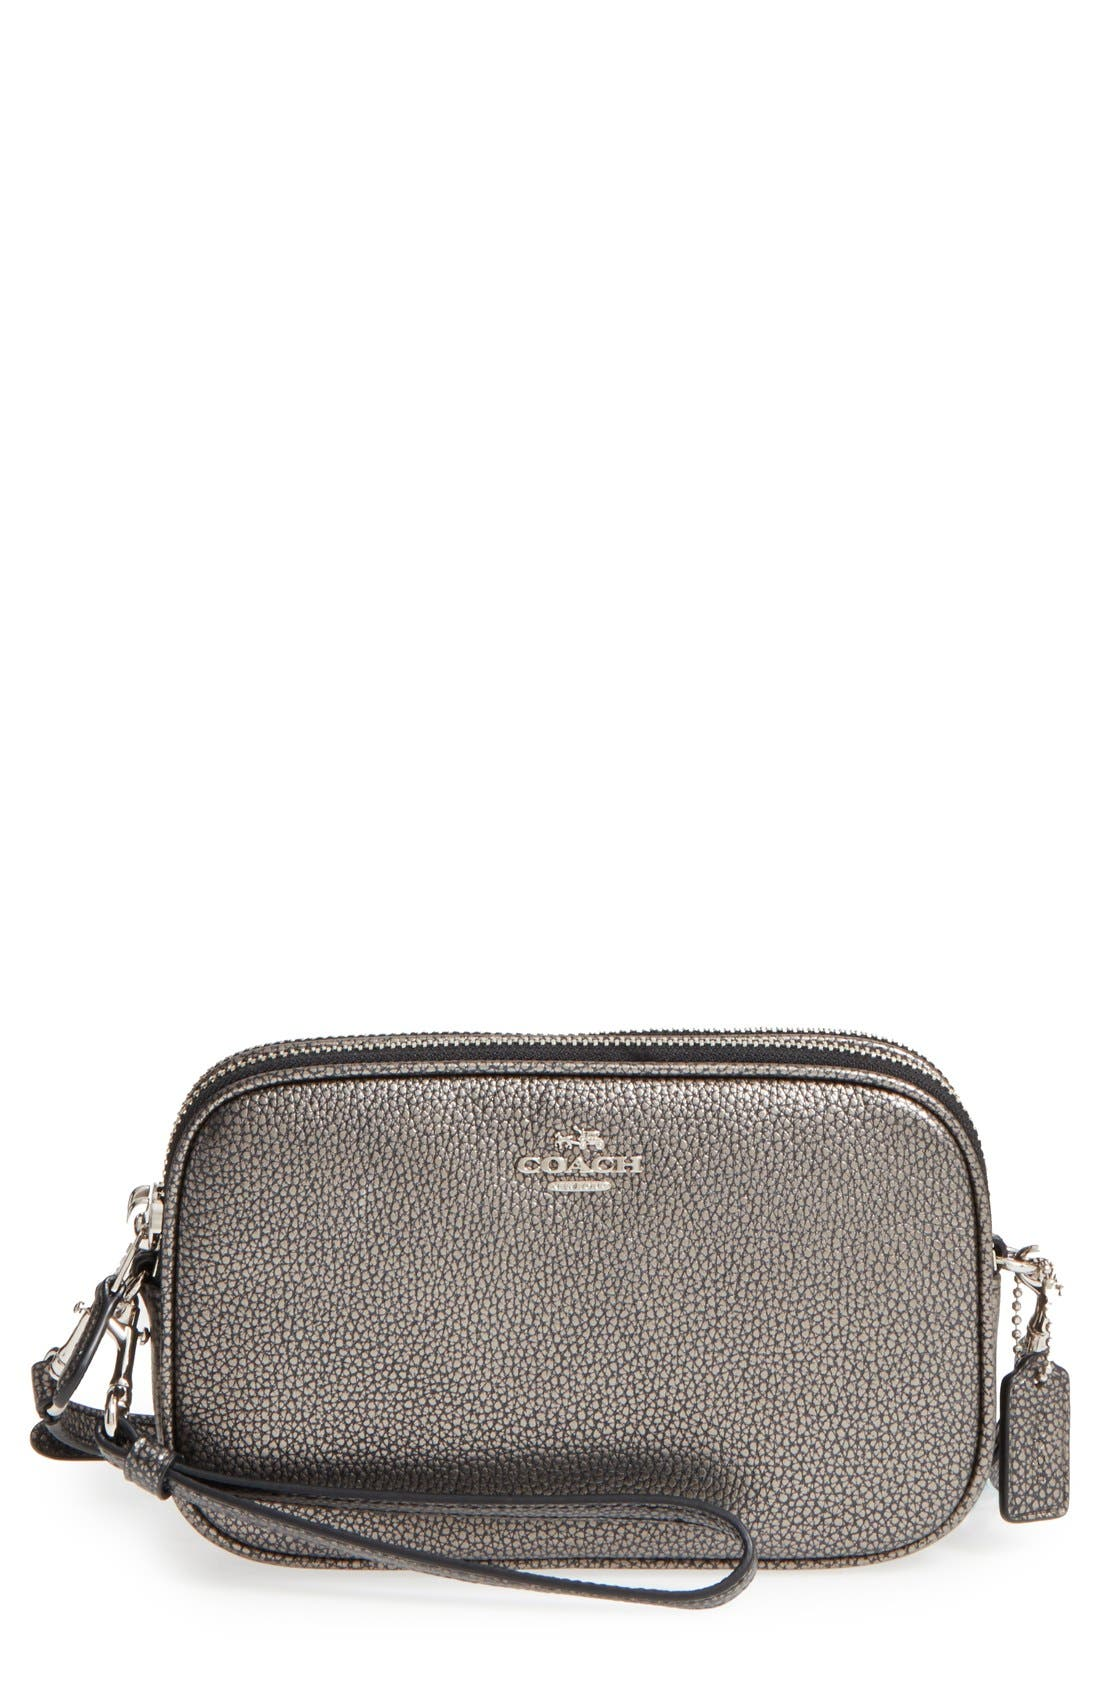 Convertible Leather Crossbody Bag,                         Main,                         color, Gunmetal/ Silver